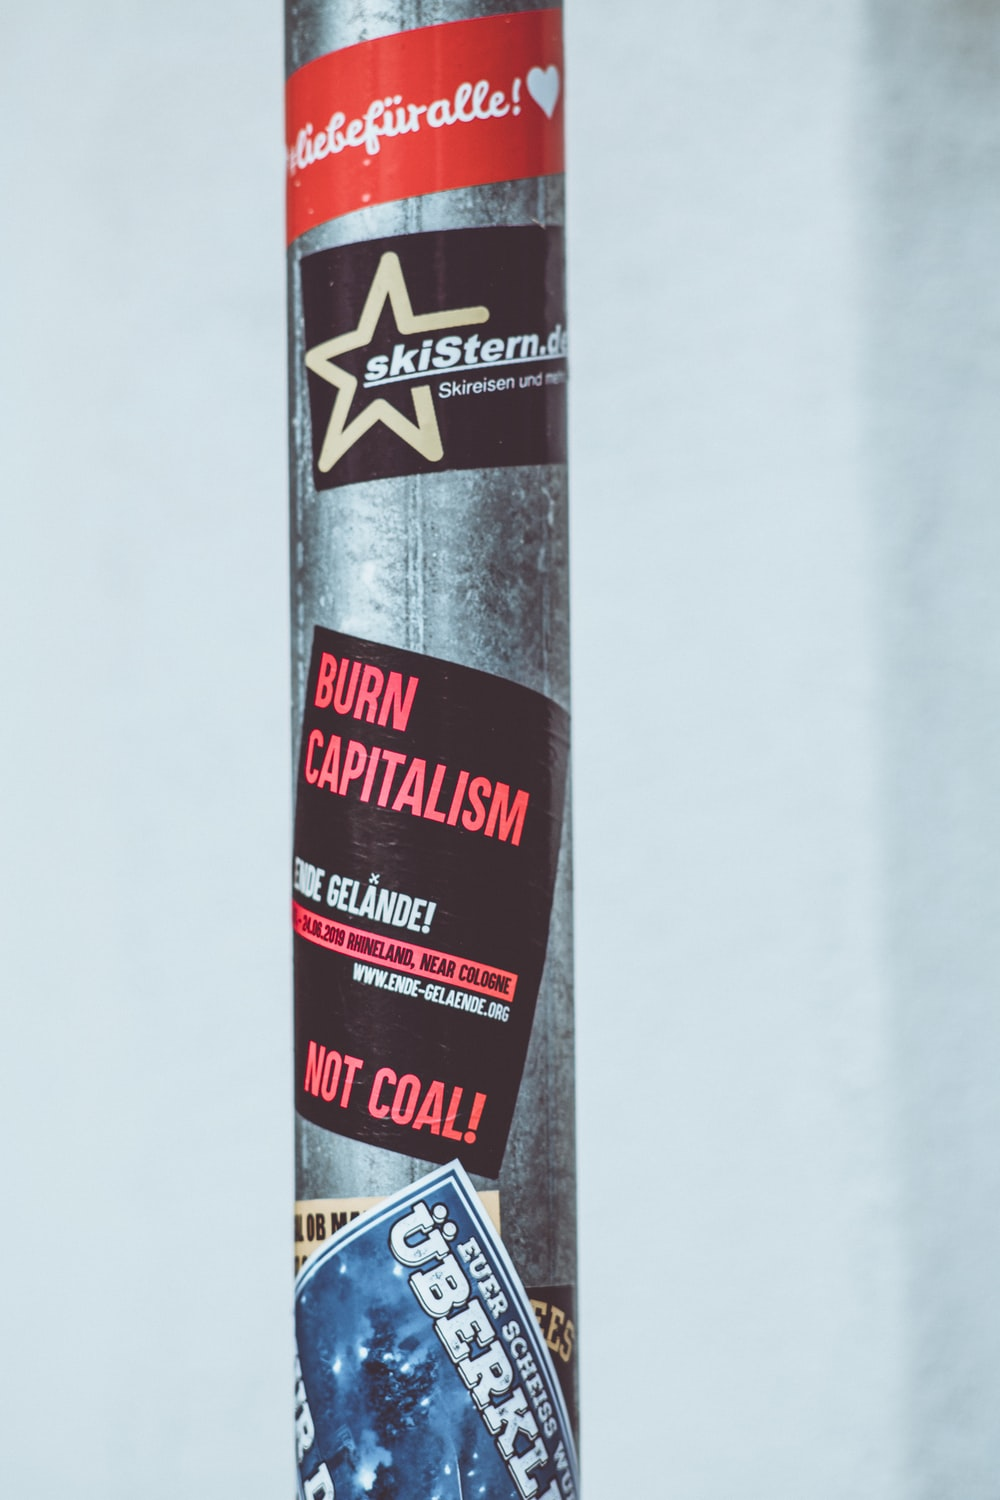 stickers on a gray metal pole